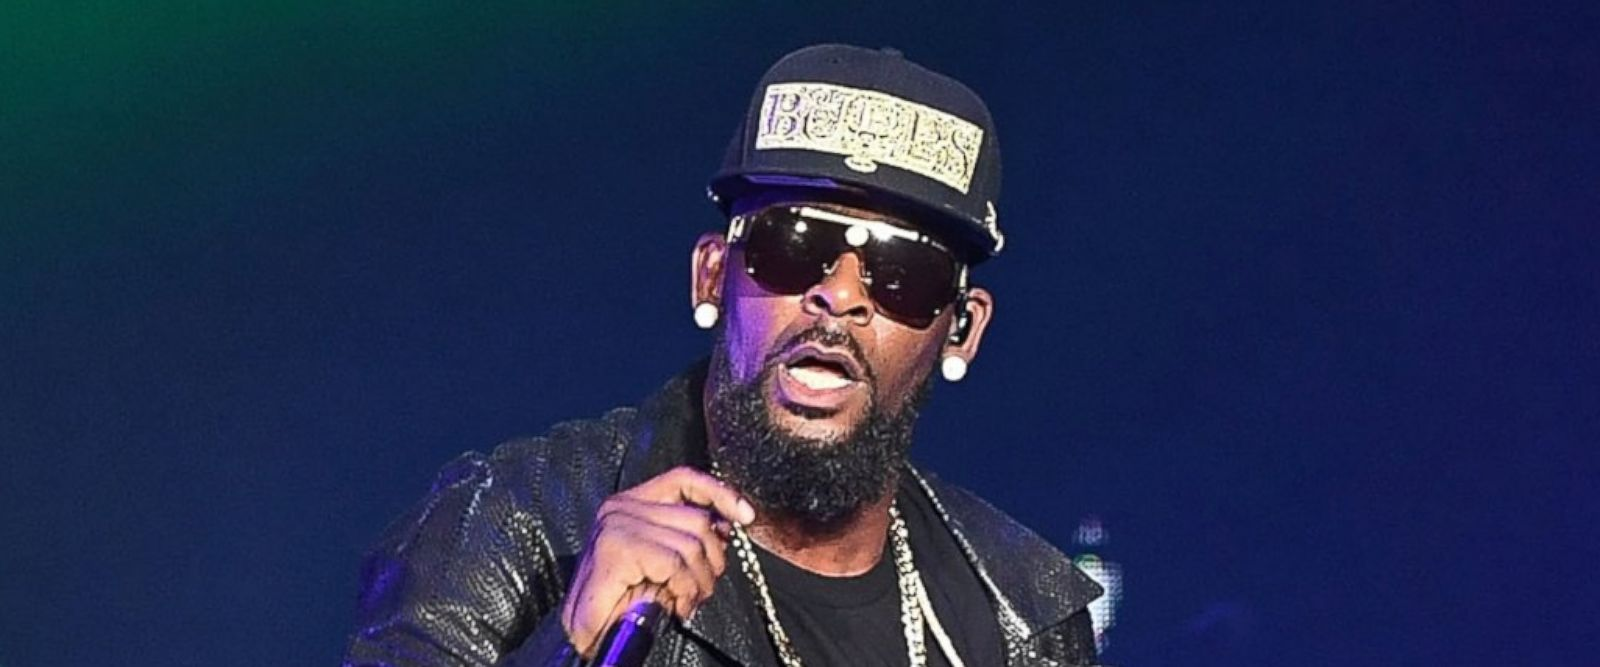 Atlanta Official Calls for Criminal Investigation Into R. Kelly [Watch]